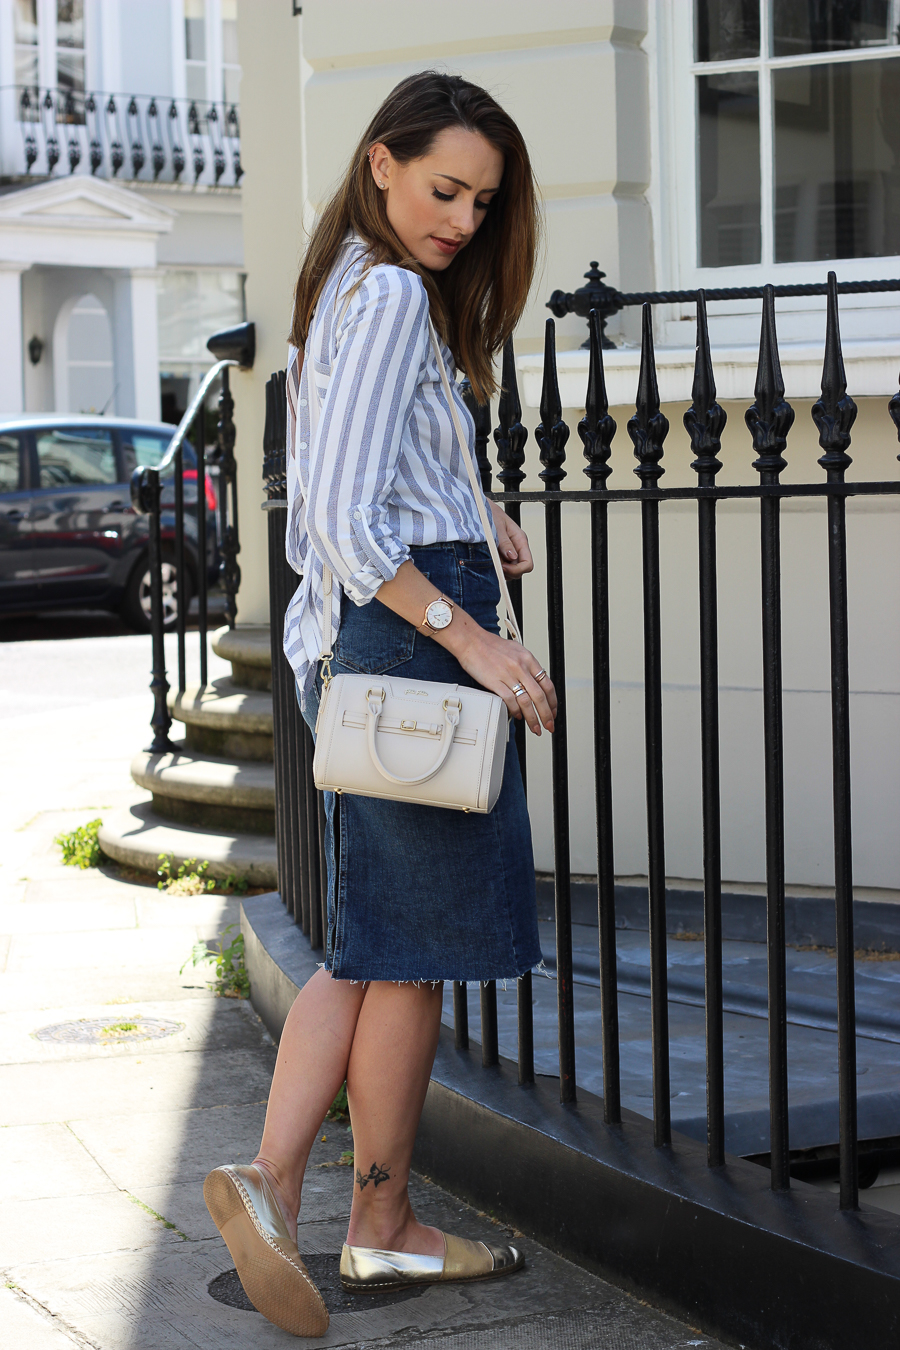 Folli Follie UK - Clutch and carry on - uk travel blogger, uk fashion blogger, london street style, sabrina chakici tblogger-4